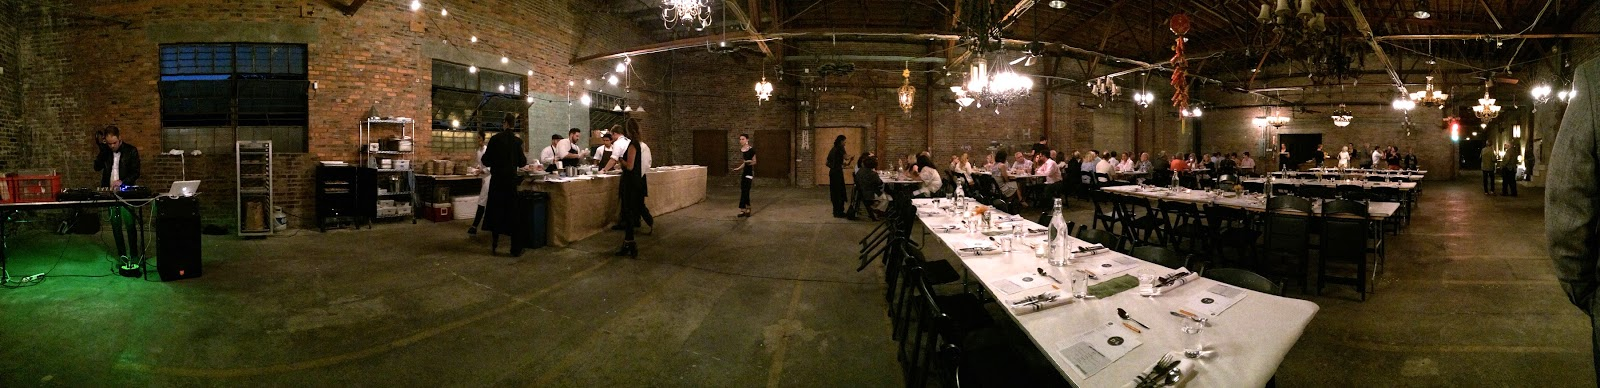 The Dinner Lab set up at the Olde Town Emporium in Baton Rouge, LA